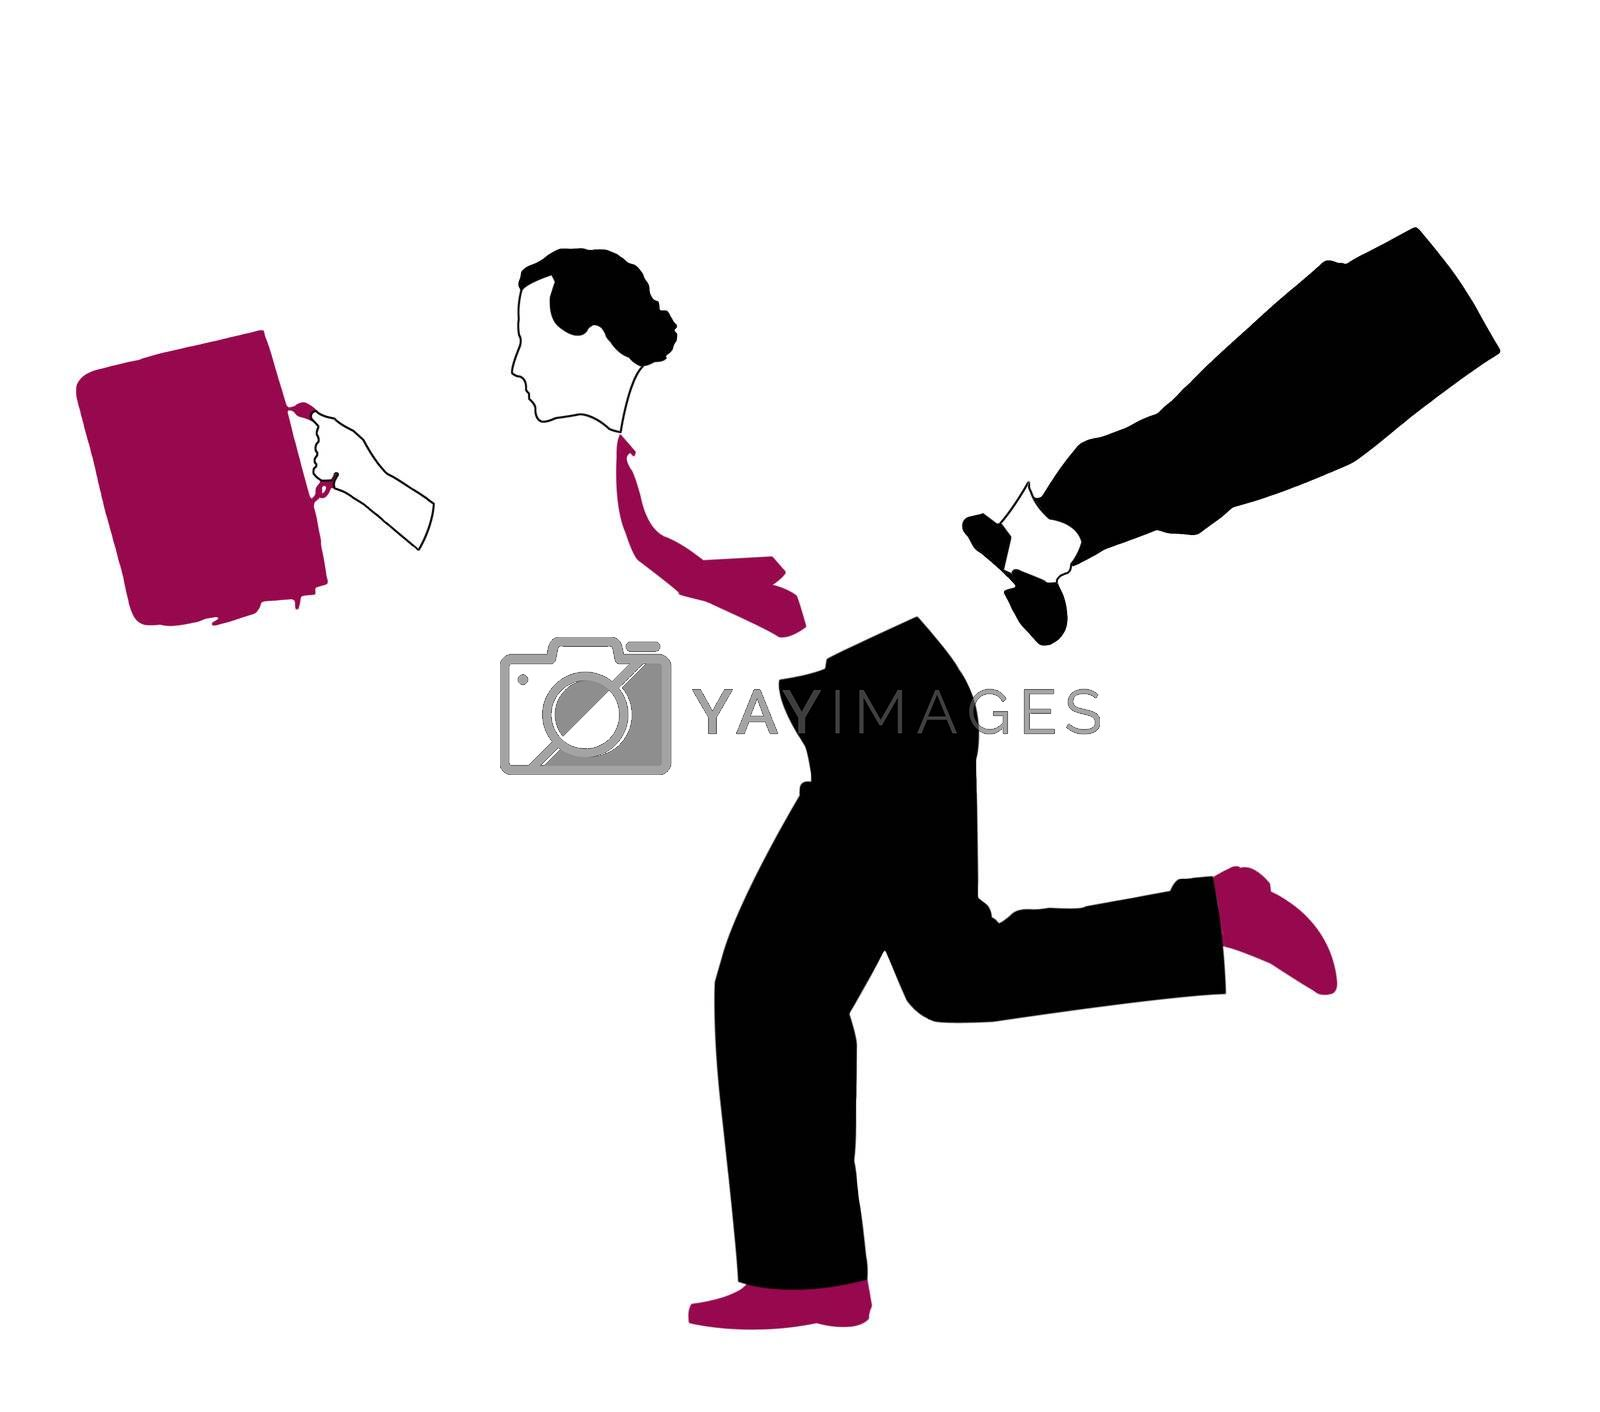 Businessman with suit and tie and red suitcase running. Illustration